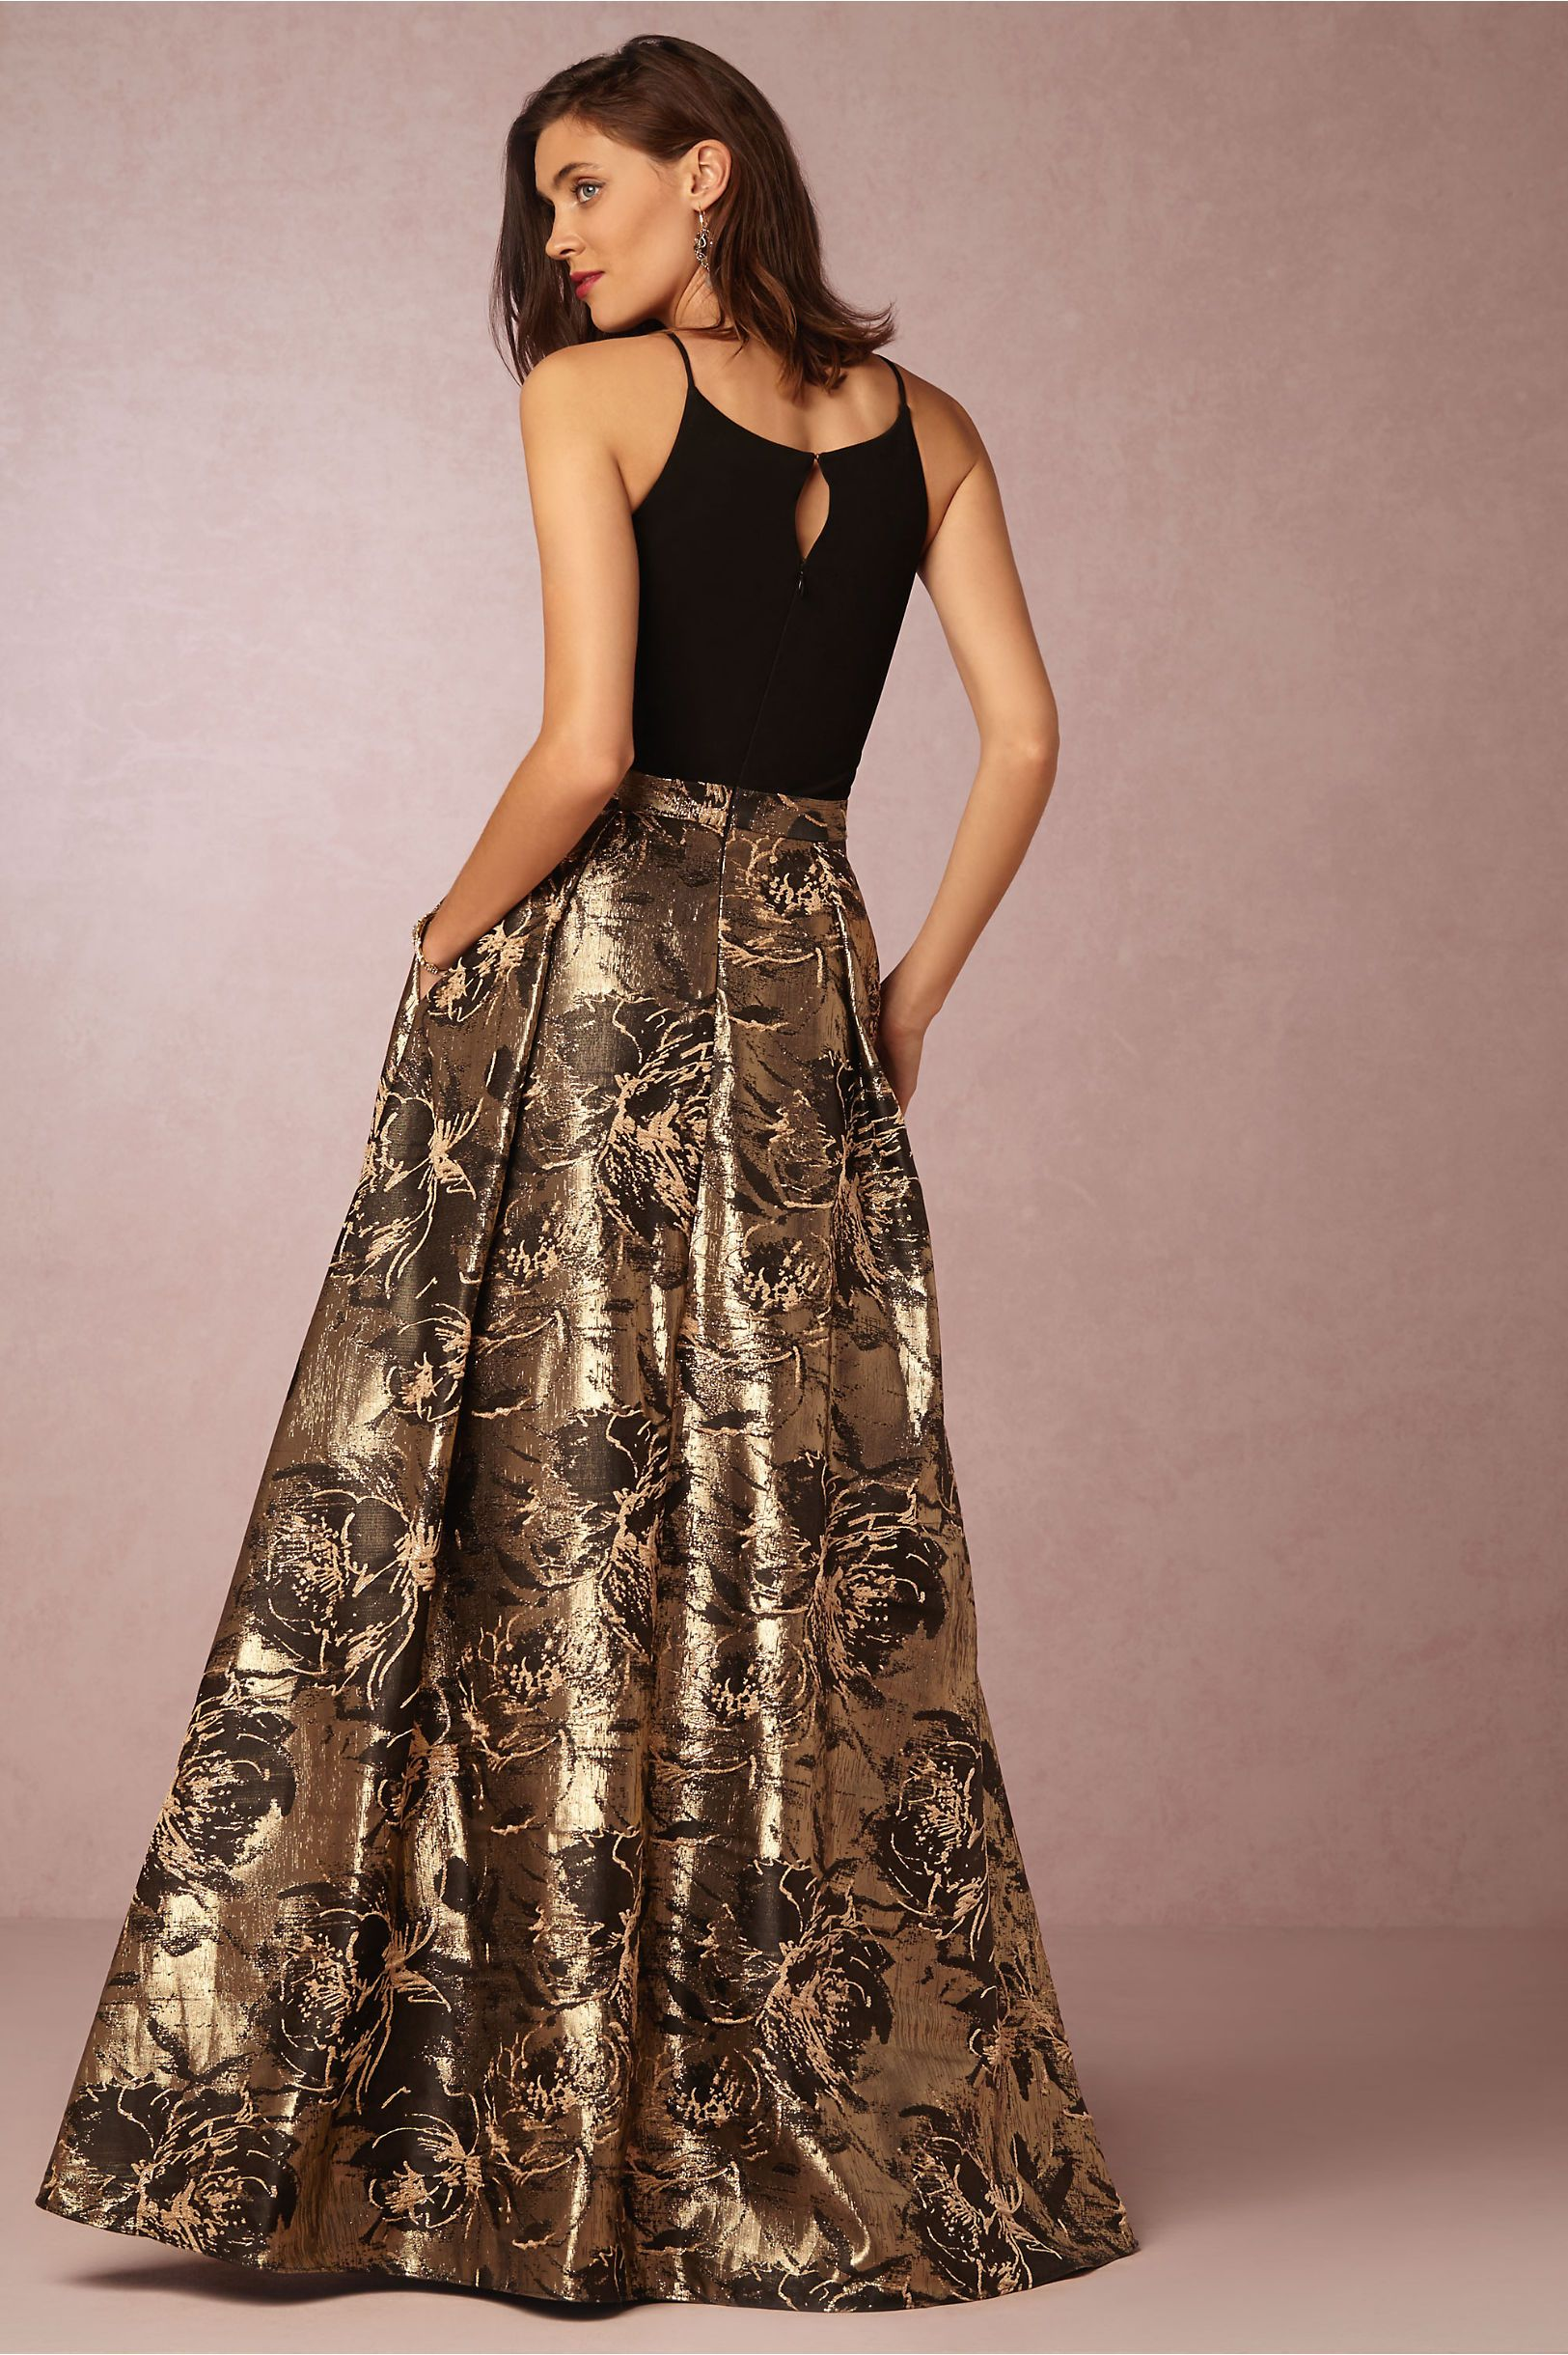 Evangeline Gown Dinner Dress Classy Black And Gold Gown Black Tie Event Dresses [ 2440 x 1625 Pixel ]